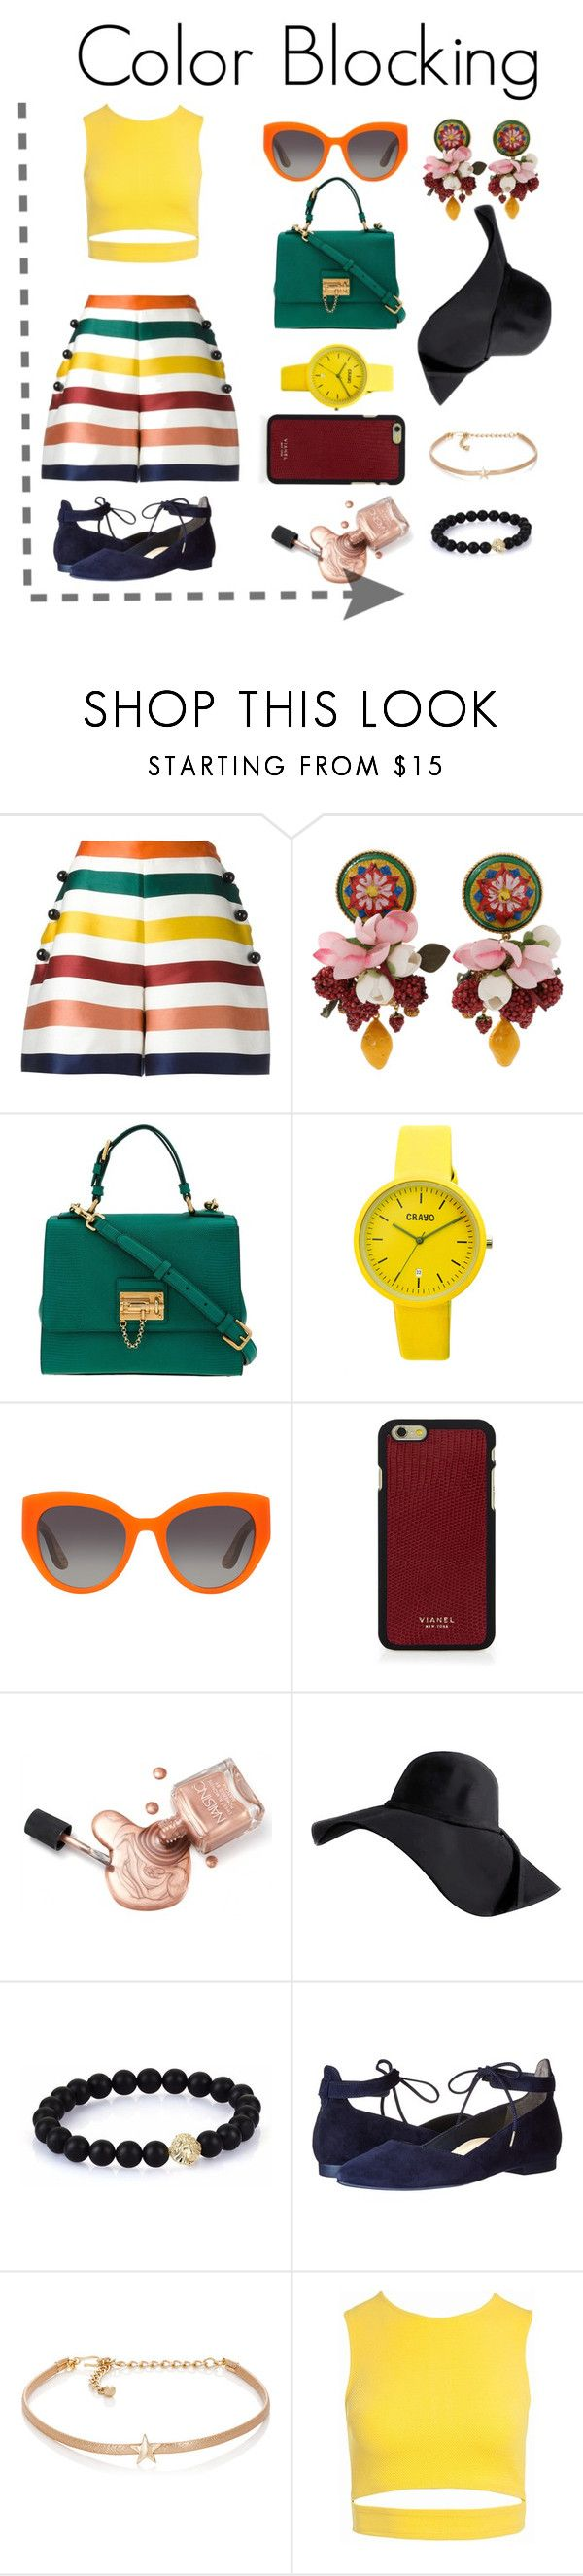 """""""Color Blocking"""" by janaki-indie ❤ liked on Polyvore featuring Carolina Herrera, Dolce&Gabbana, Crayo, Vianel, Paul Green, Kenneth Jay Lane and Sans Souci"""